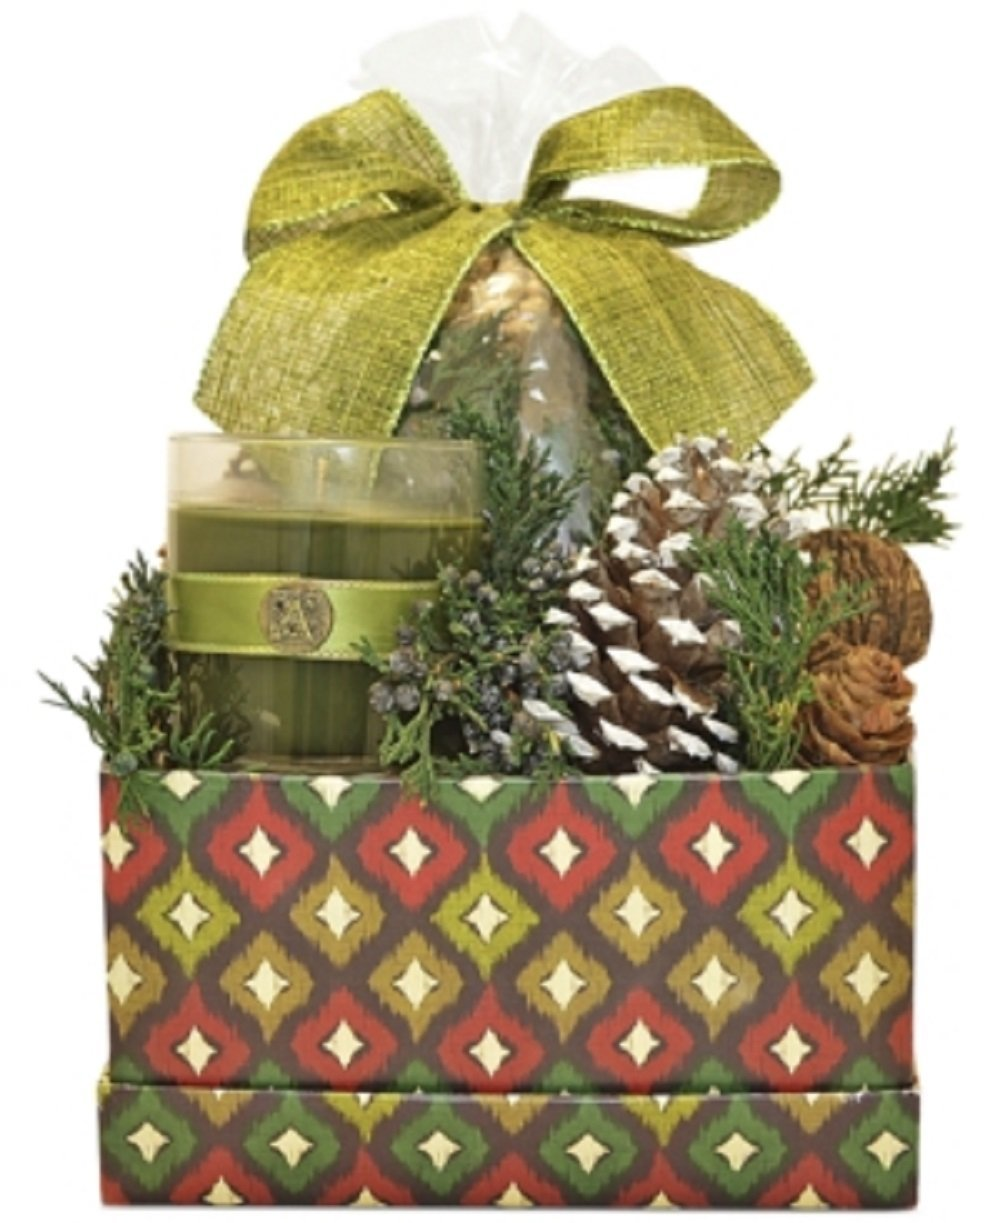 Smell of the Tree Gift Set By Aromatique